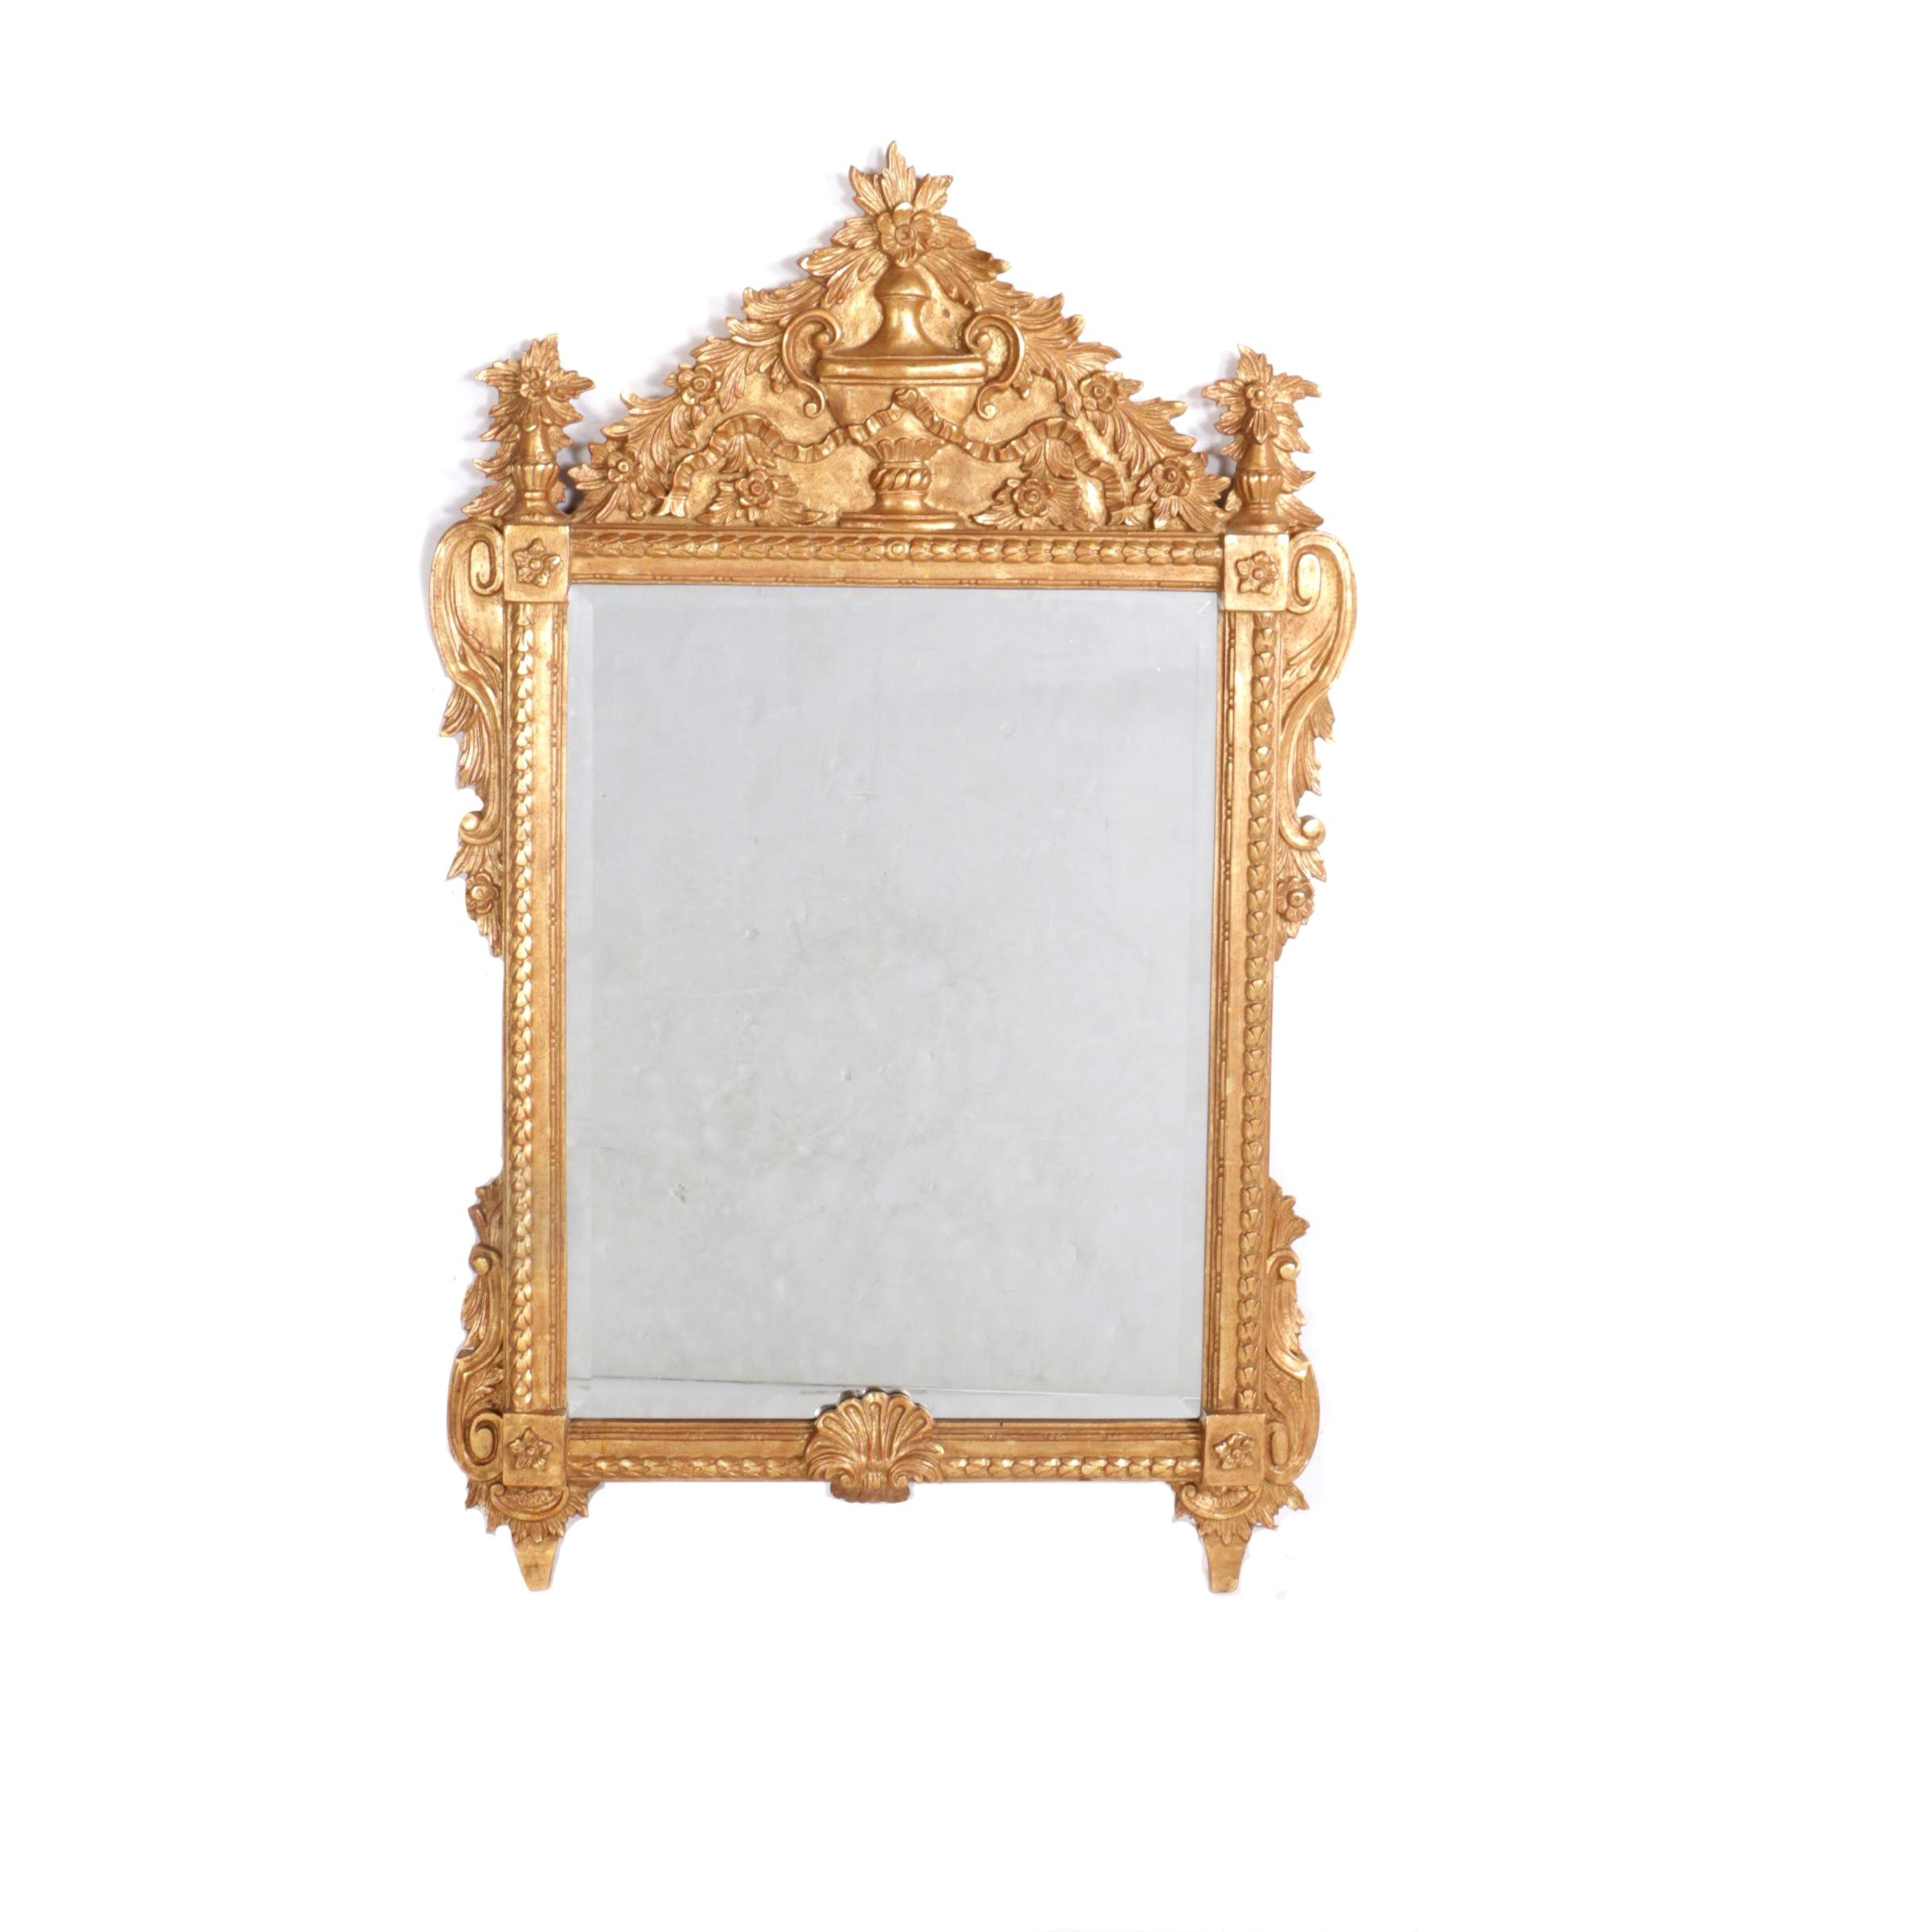 Mirror Fair Ornate Gilt Wall Mirror